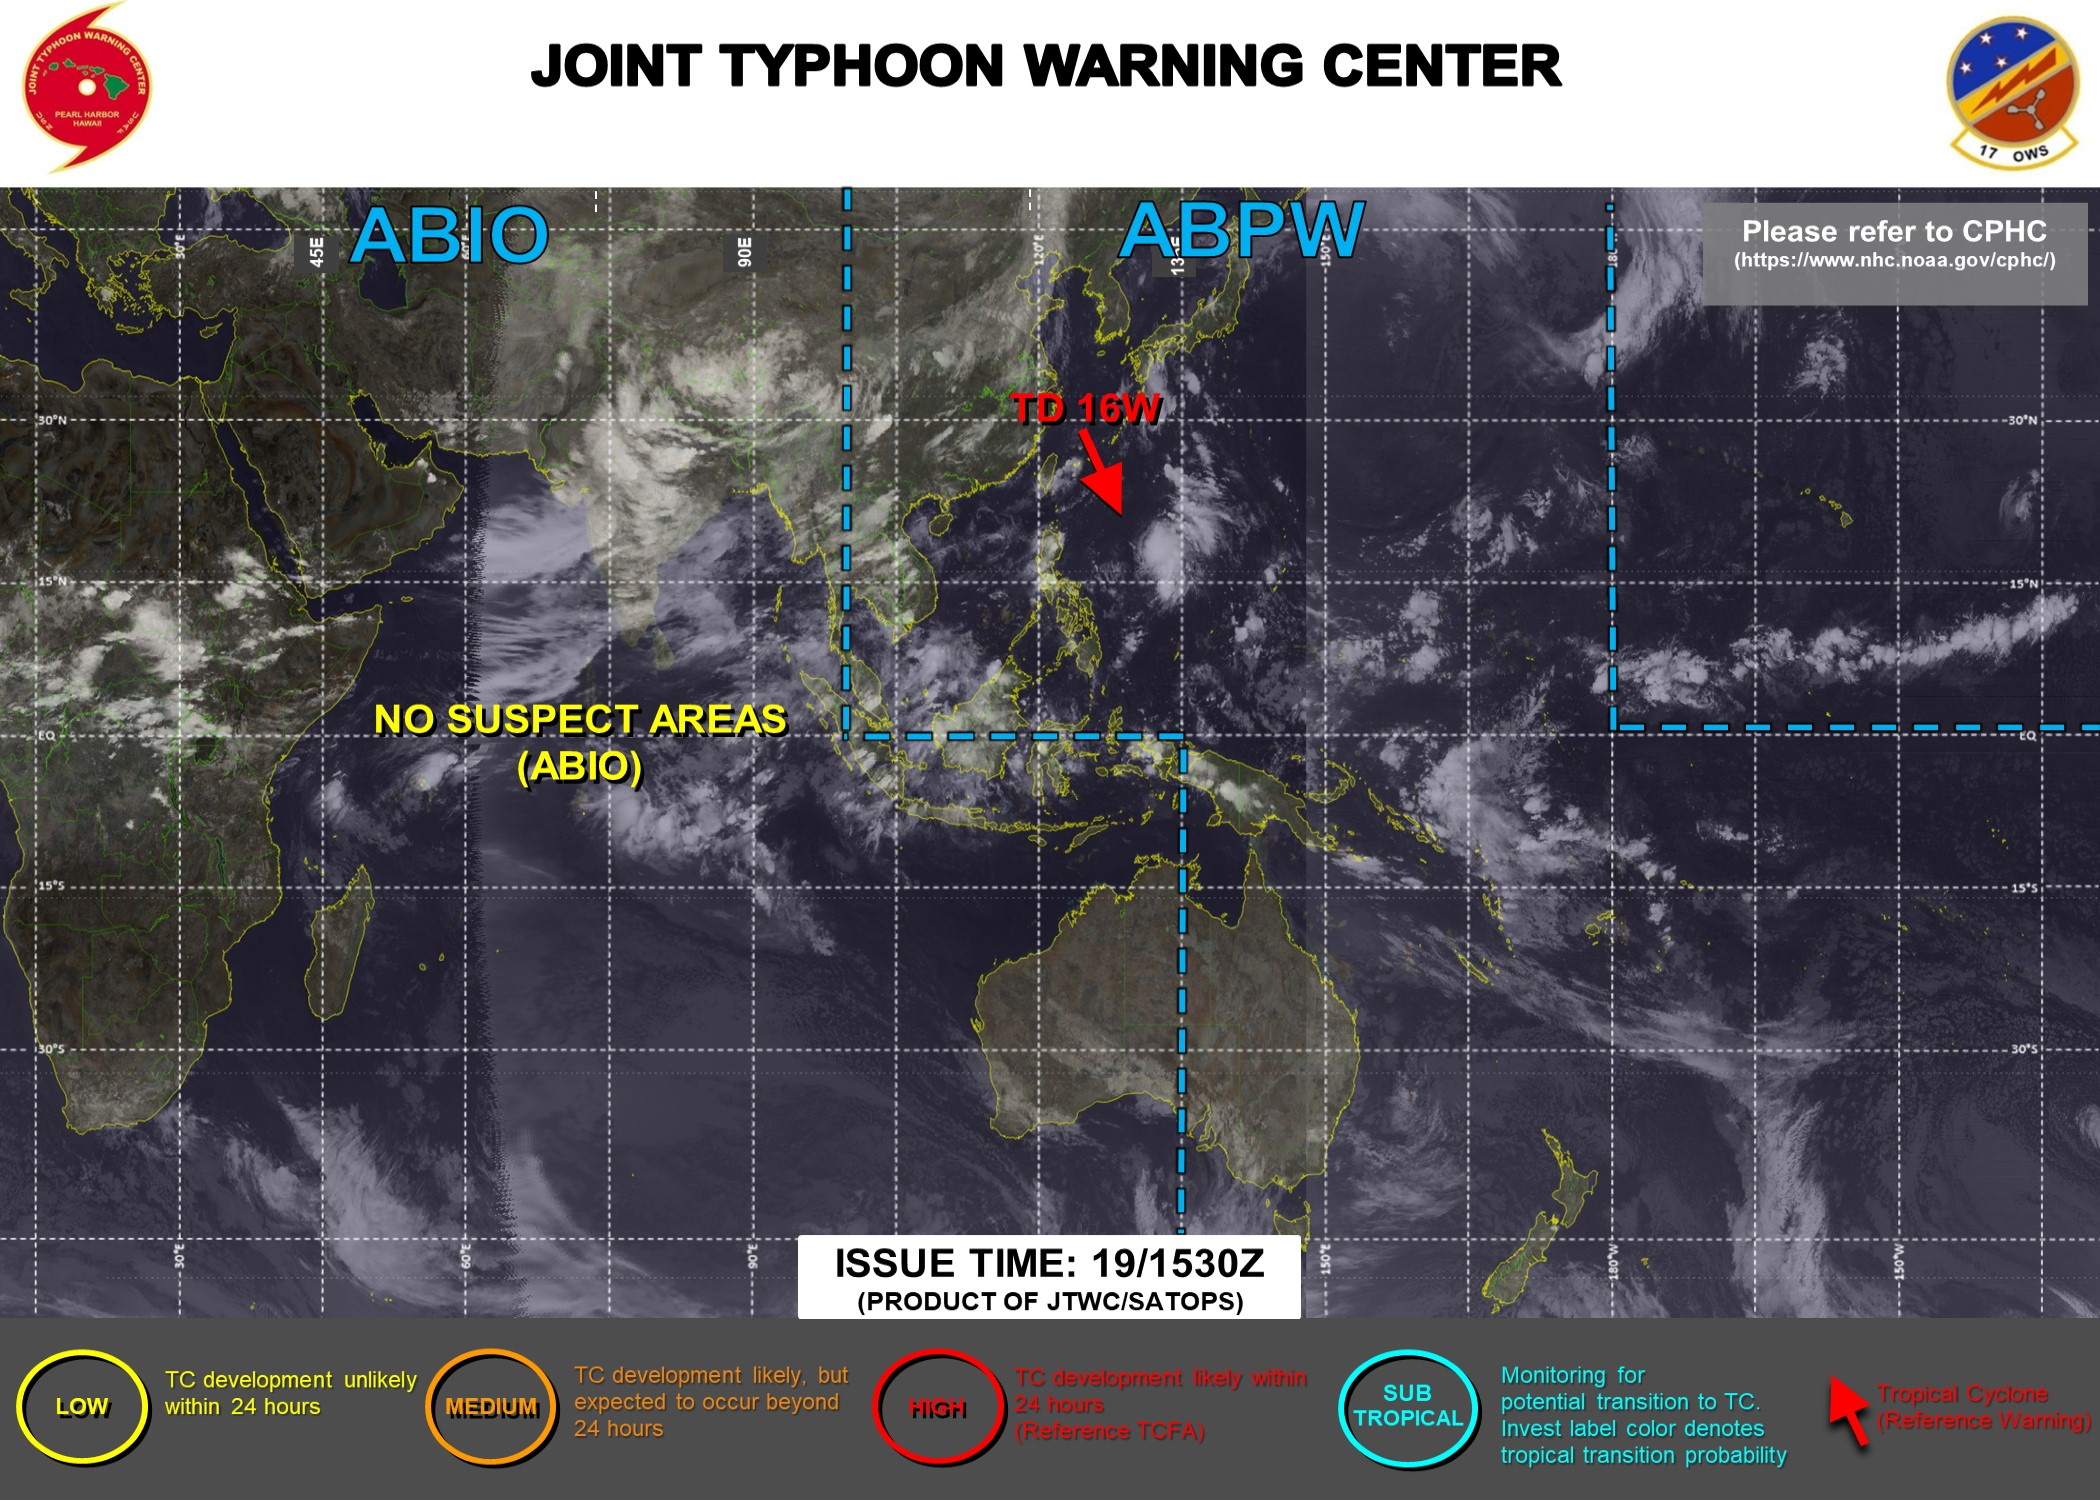 TD 16W. JTWC HAVE ARE RE-ISSUING 6HOURLY WARNINGS ON 16W. 3HOURLY SATELLITE BULLETINS ARE STILL ISSUED ON THIS SYSTEM.